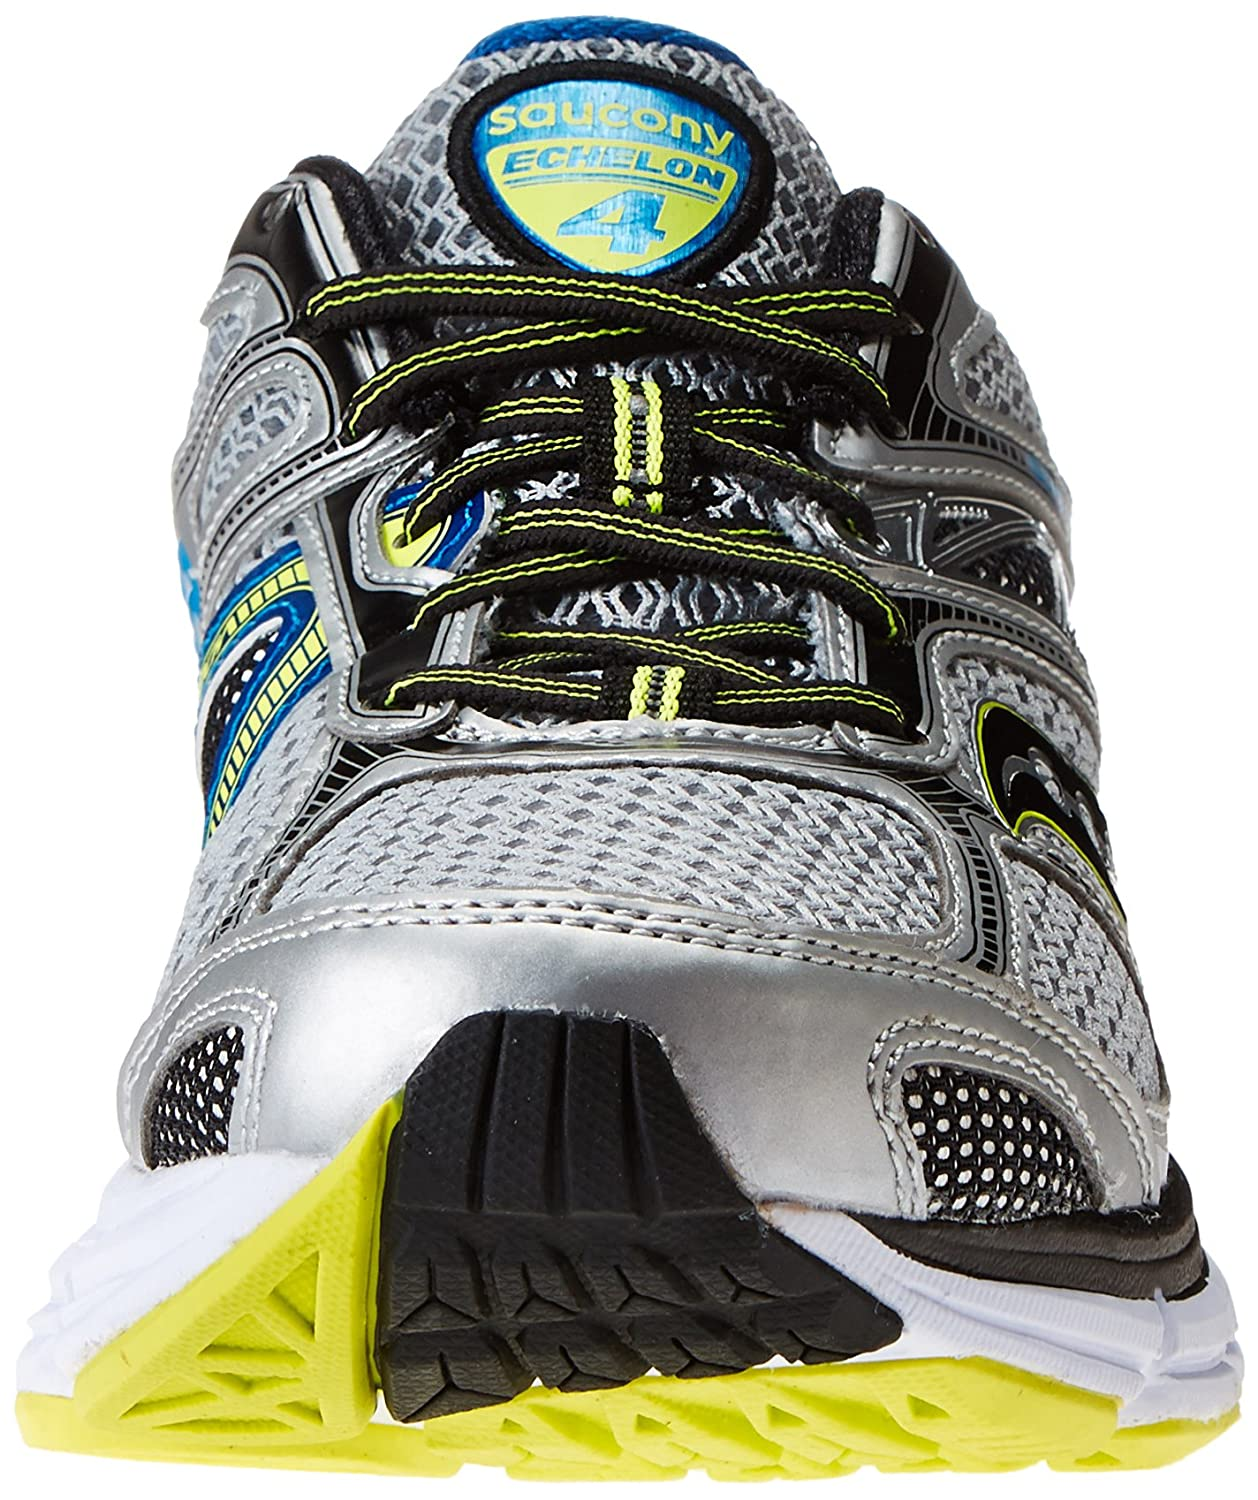 Saucony Men s Echelon 4 Running Shoe